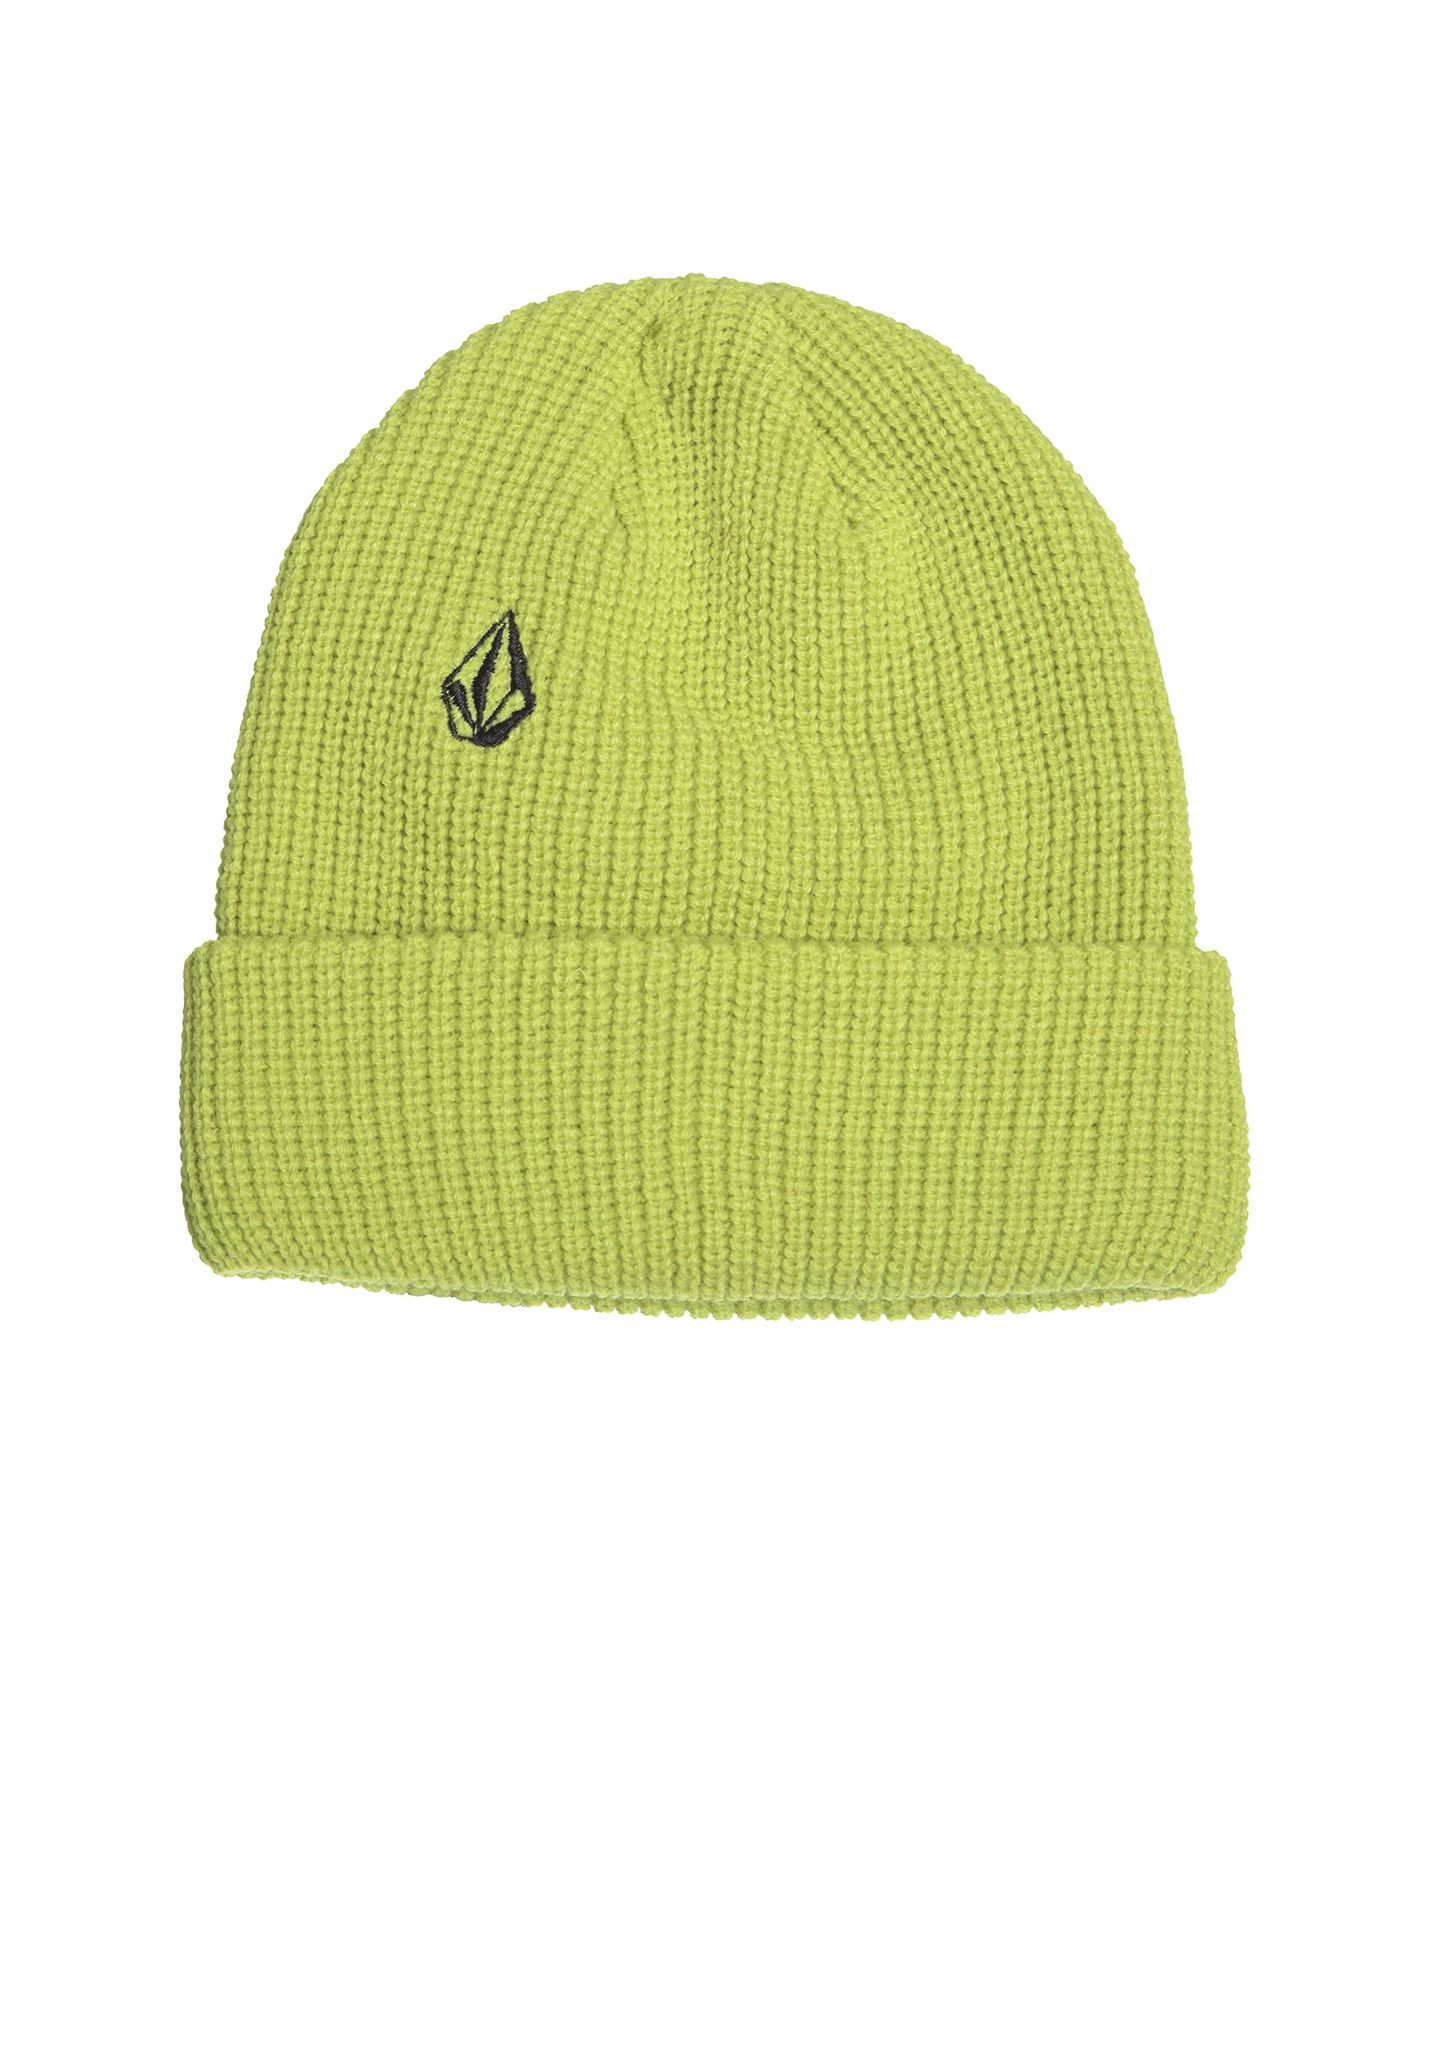 Volcom Full Stone Cuff - Beanie for Men - Yellow - Planet Sports cdc0f3020d06